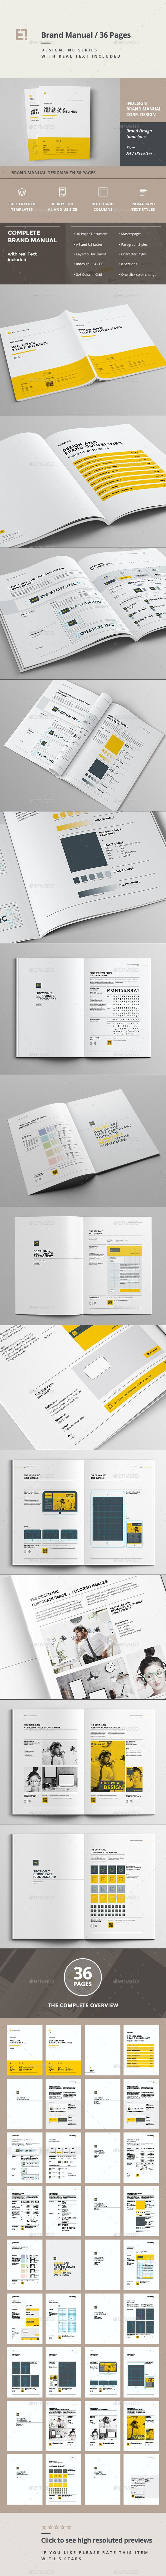 Minimal and Professional Brand Manual and Identity Brochure template for creative businesses, created in Adobe InDesign in International DIN A4 and US Letter format.